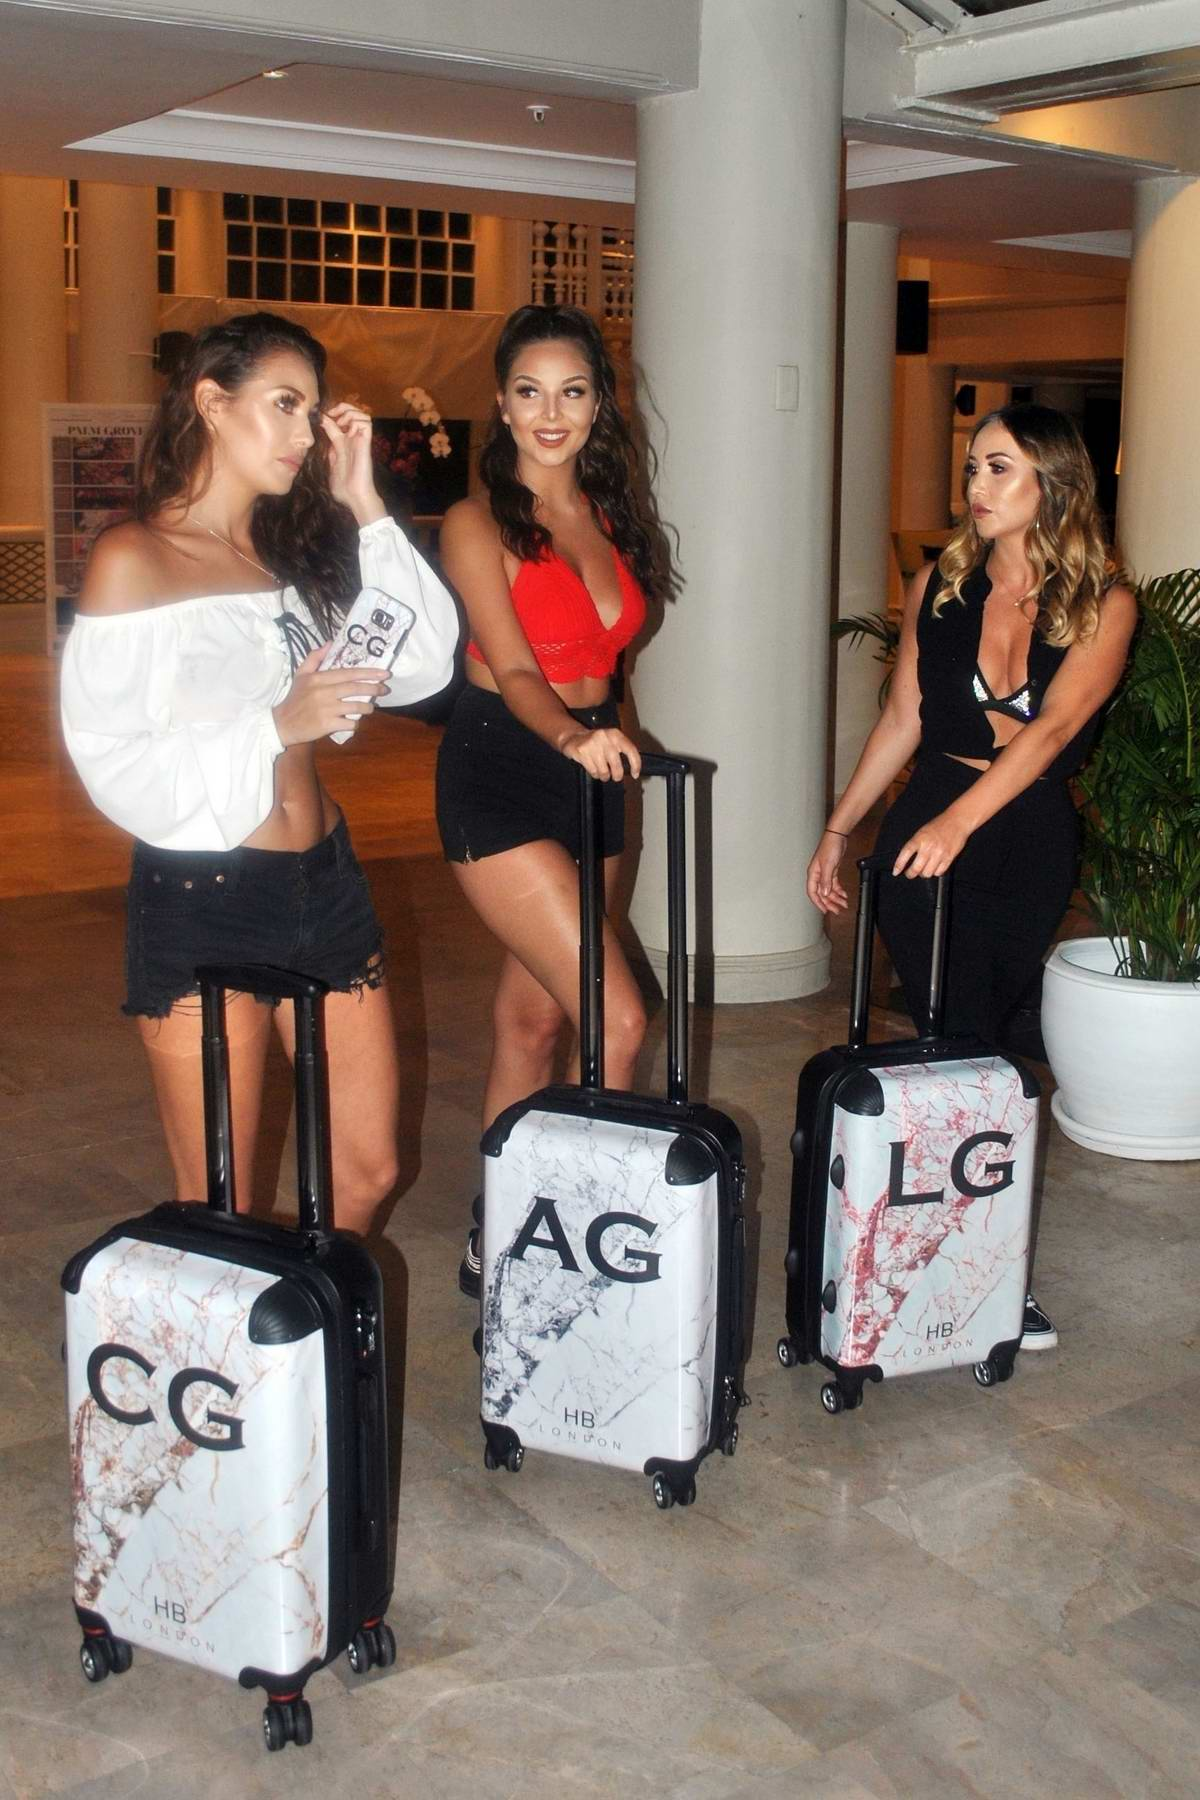 Chloe, Amelia and Lauryn Goodman shows of their personalized luggage at a resort in Thailand